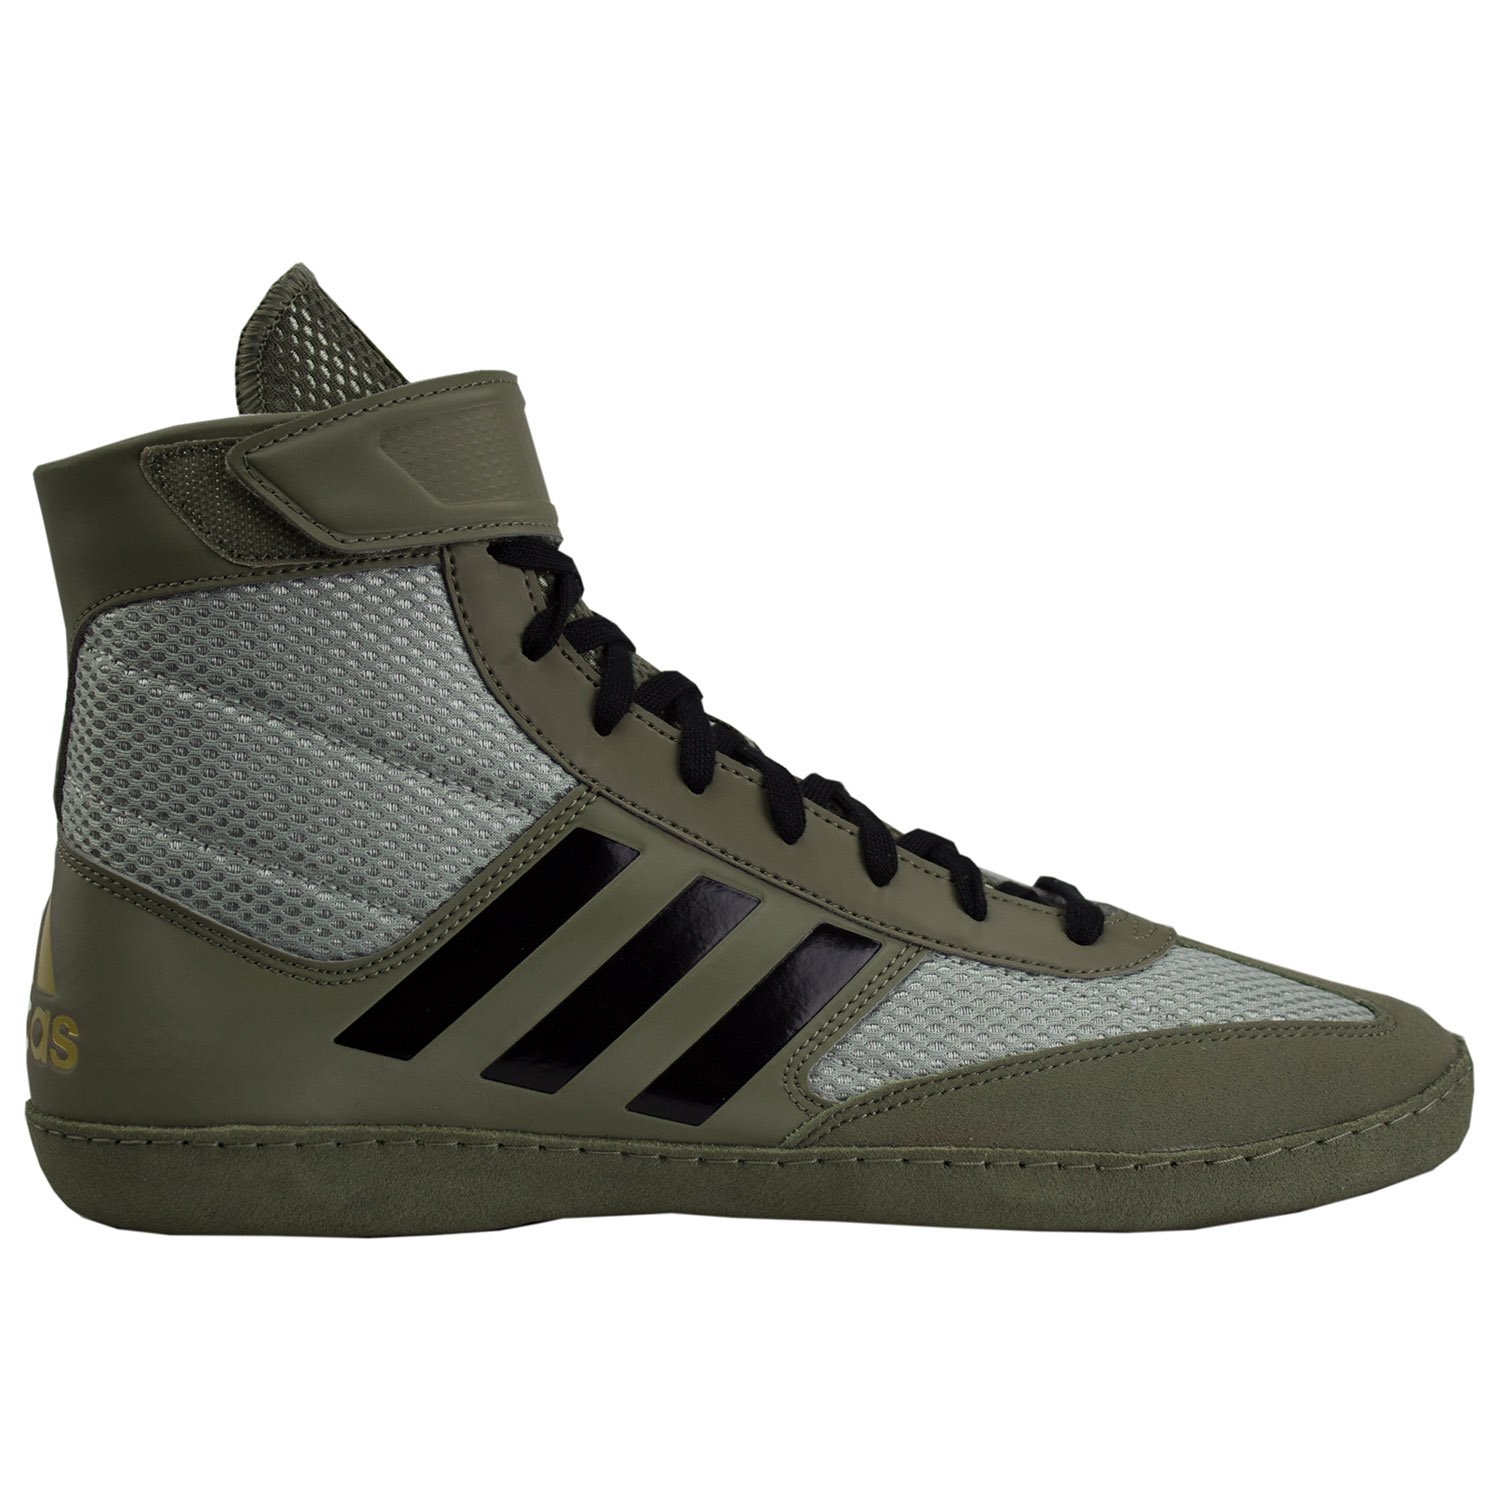 adidas Combat Speed 5 Men's Wrestling Shoes, Tan/Black/Silver, Size 10.5 by adidas